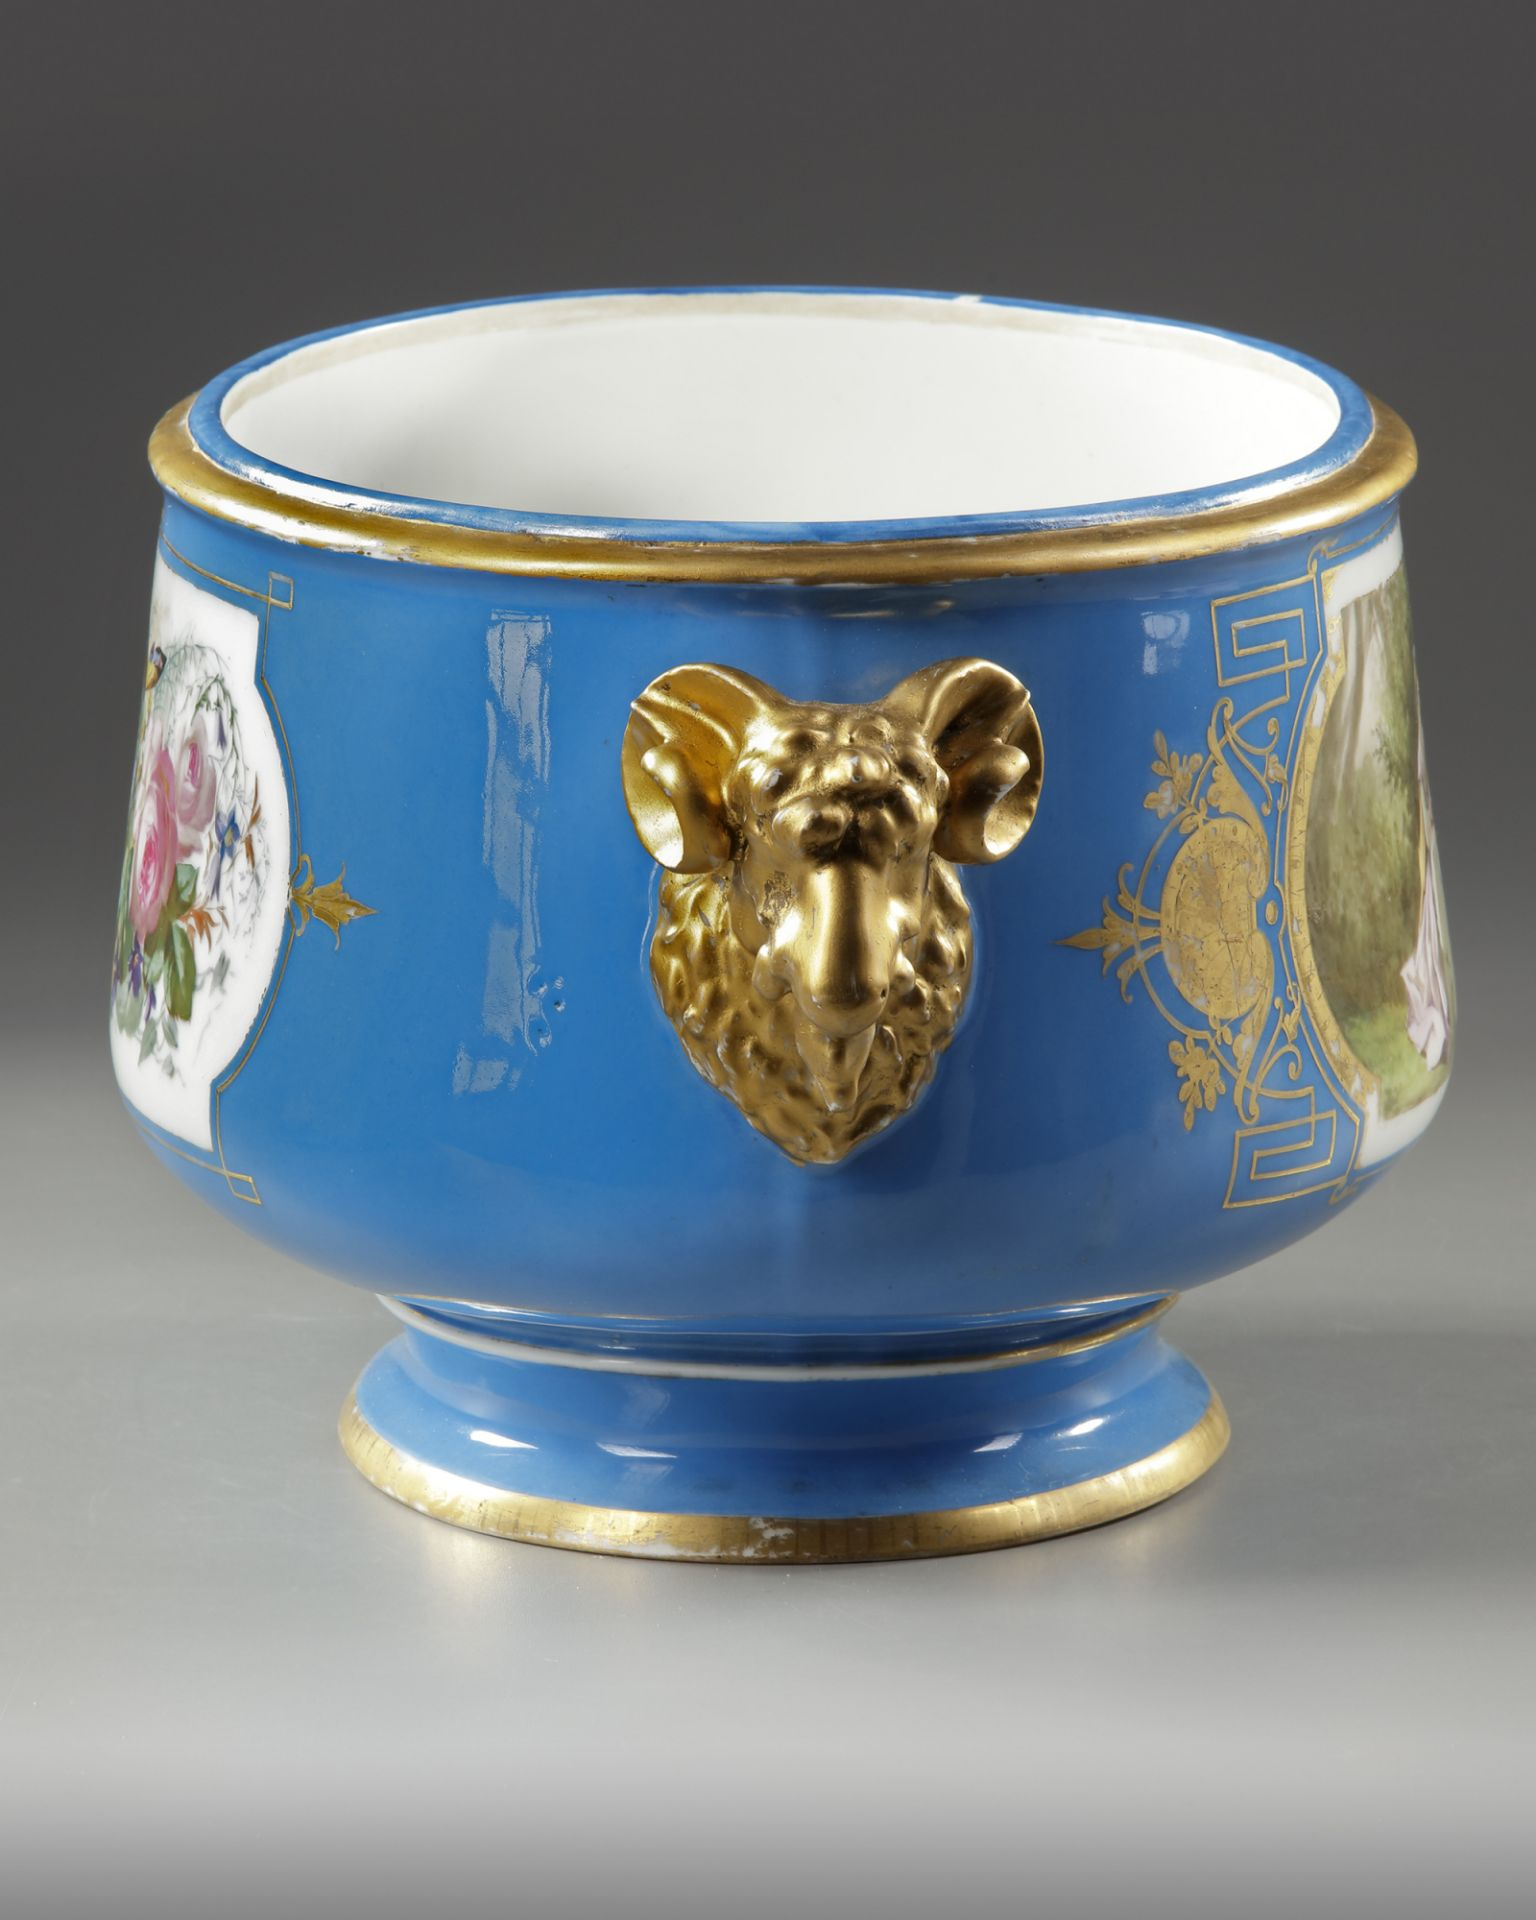 A FRENCH SEVRES PORCELAIN CUP, LATE 19TH CENTURY - Image 4 of 5